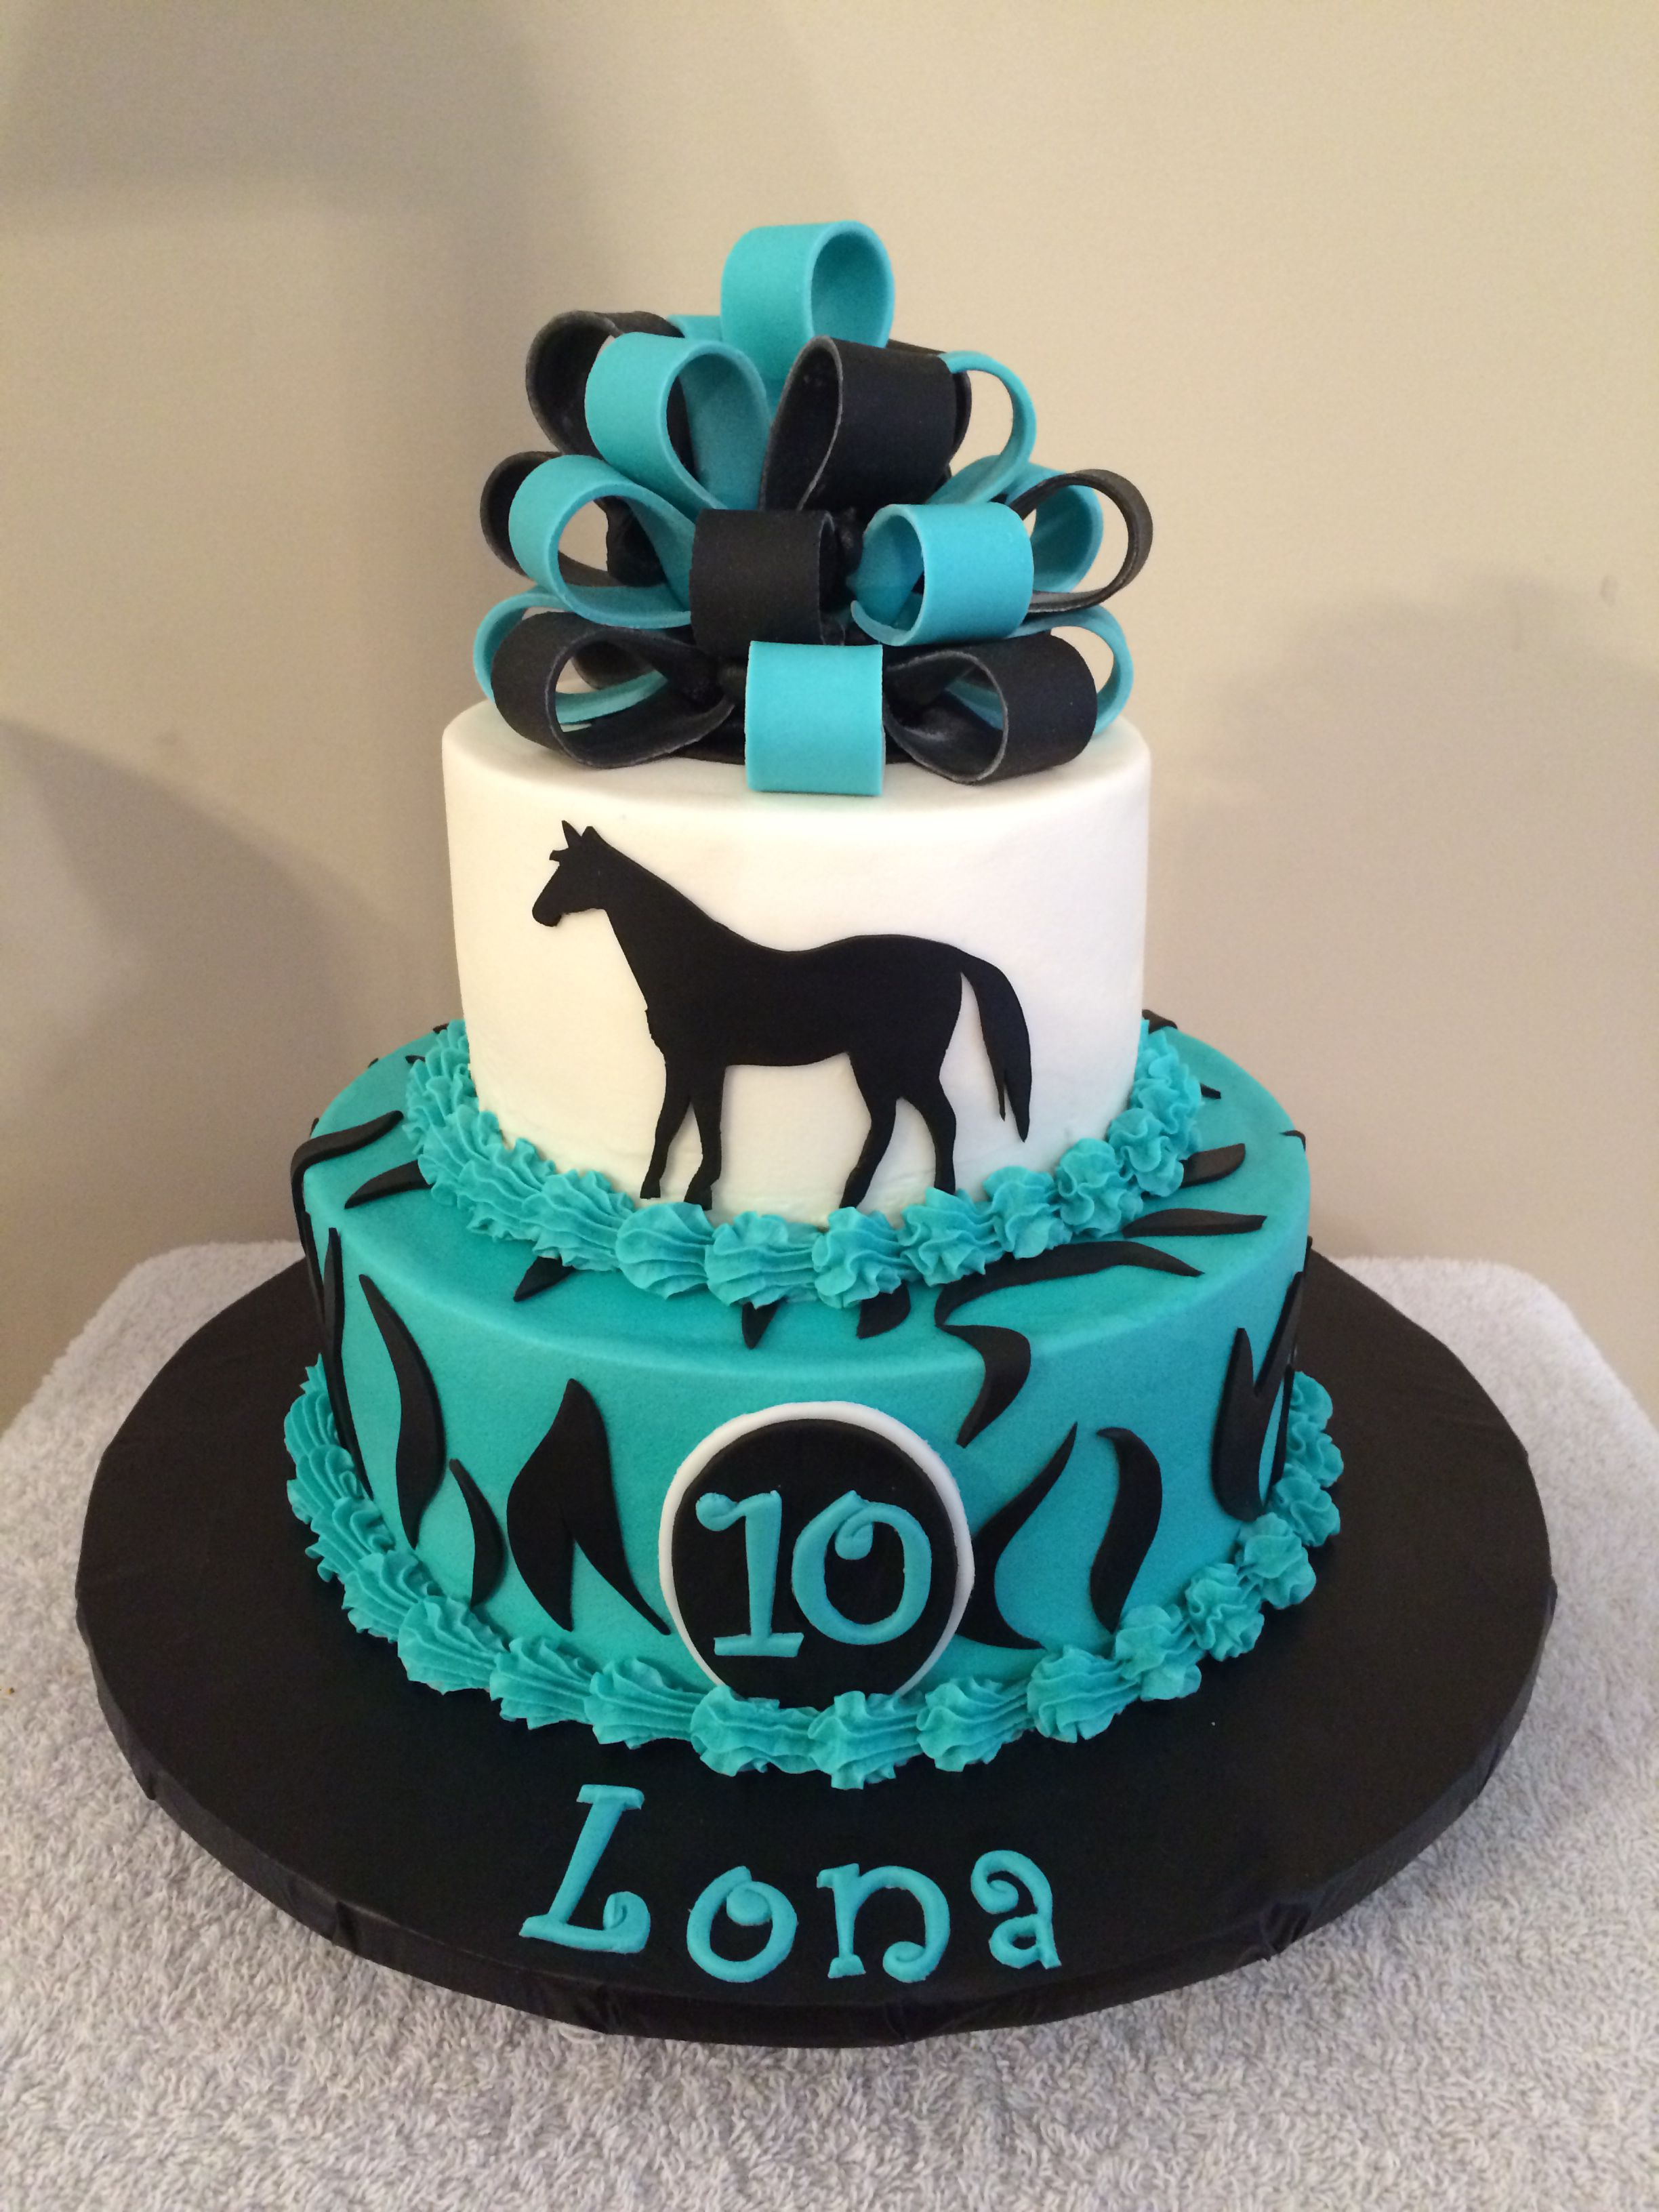 2 Tier Zebra Horse Themed Cake With Buttercream Icing And